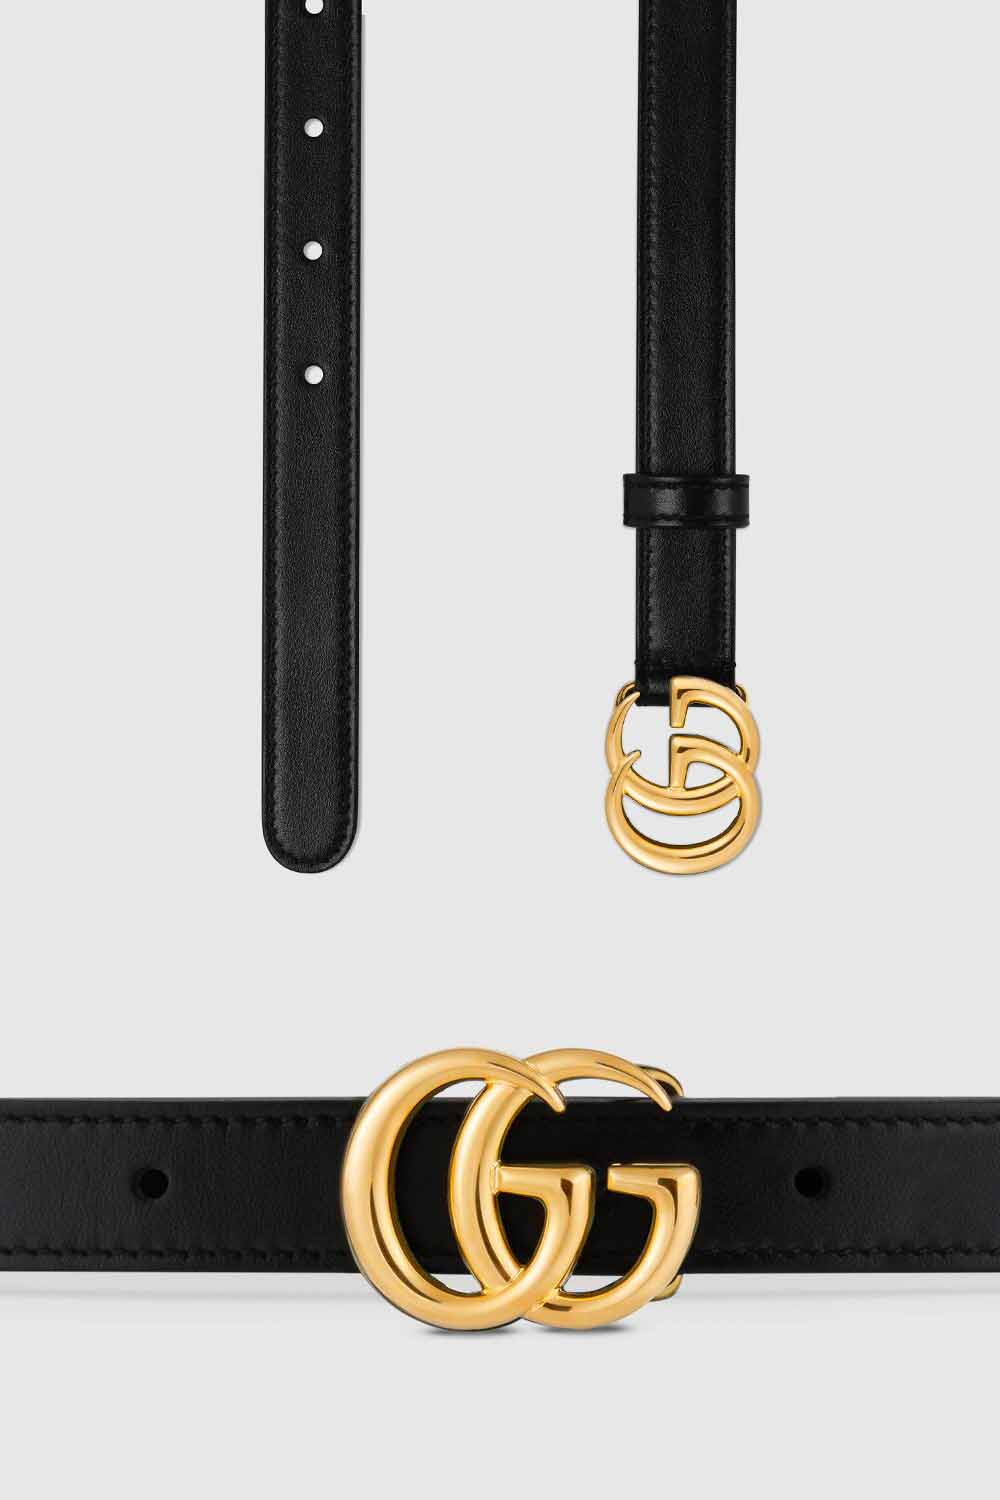 The best luxury gifts for her women - Gucci marmont belt black and gold gift idea